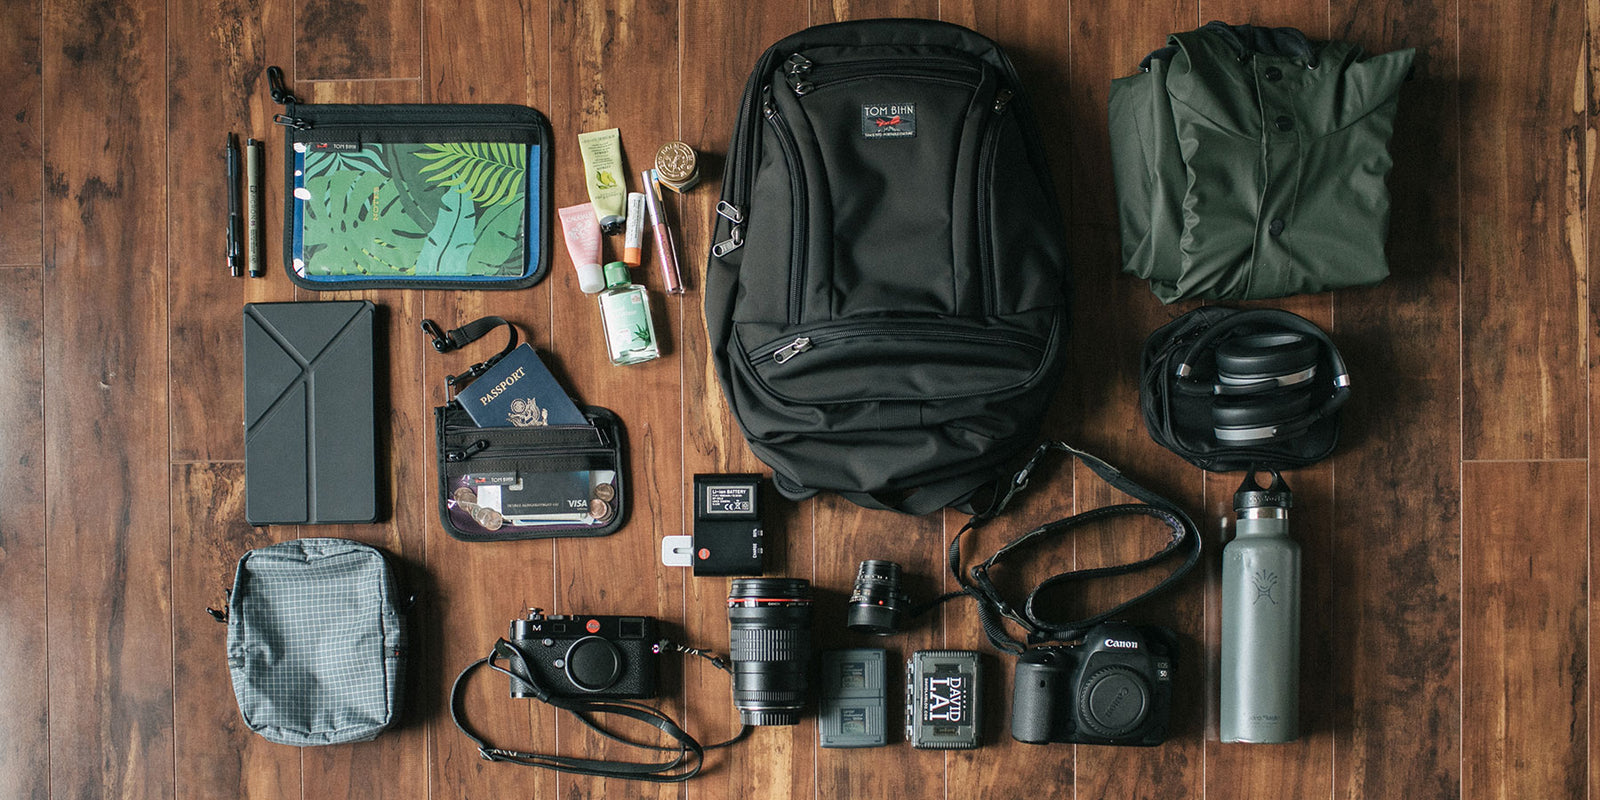 Daily carry items (laptop, jacket, cords, etc.) laid out around a Synapse 19 backpack in Black